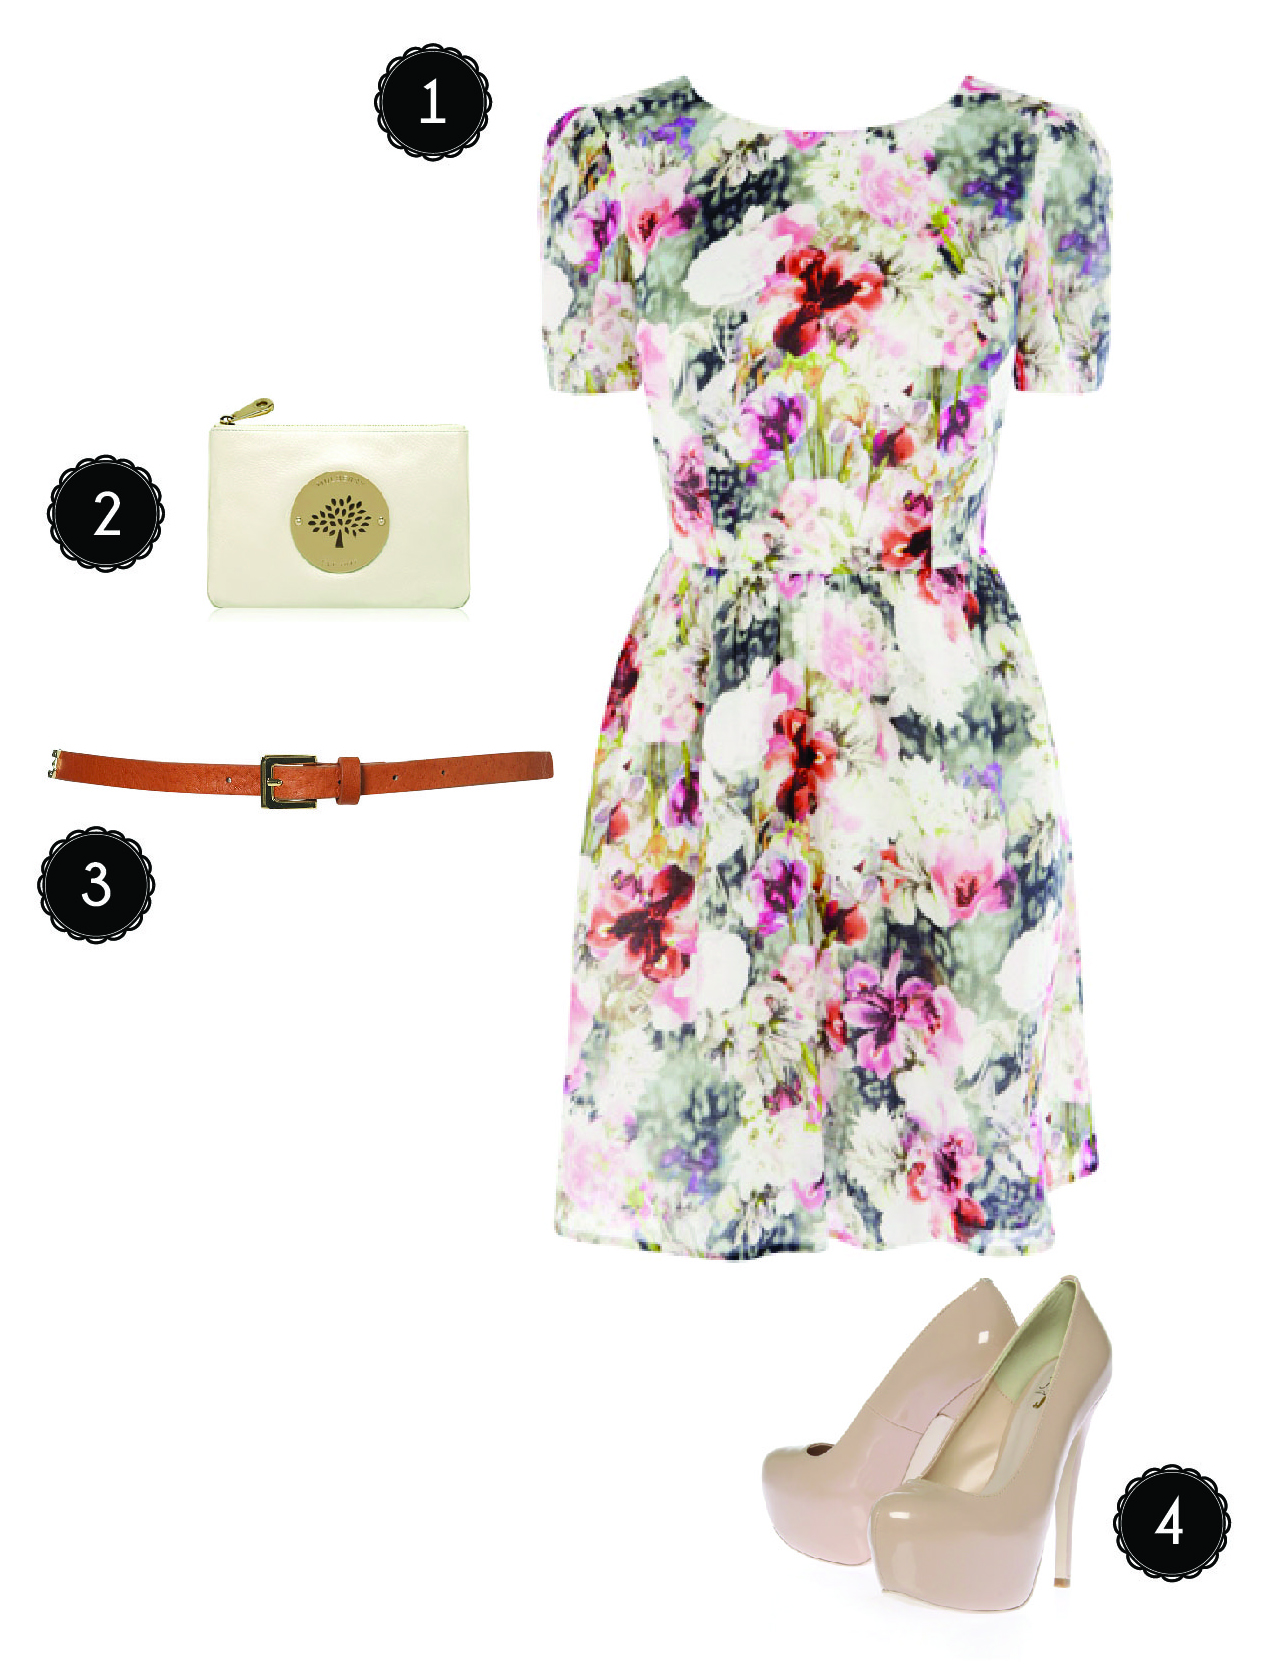 wedding outfit inspiration wedding outfits Photographic Floral Skater Dress from Oasis 2 Daria Pouch in Pear Sorbet from Mulberry 3 Double Snaffle Skinny Belt in tan from Topshop